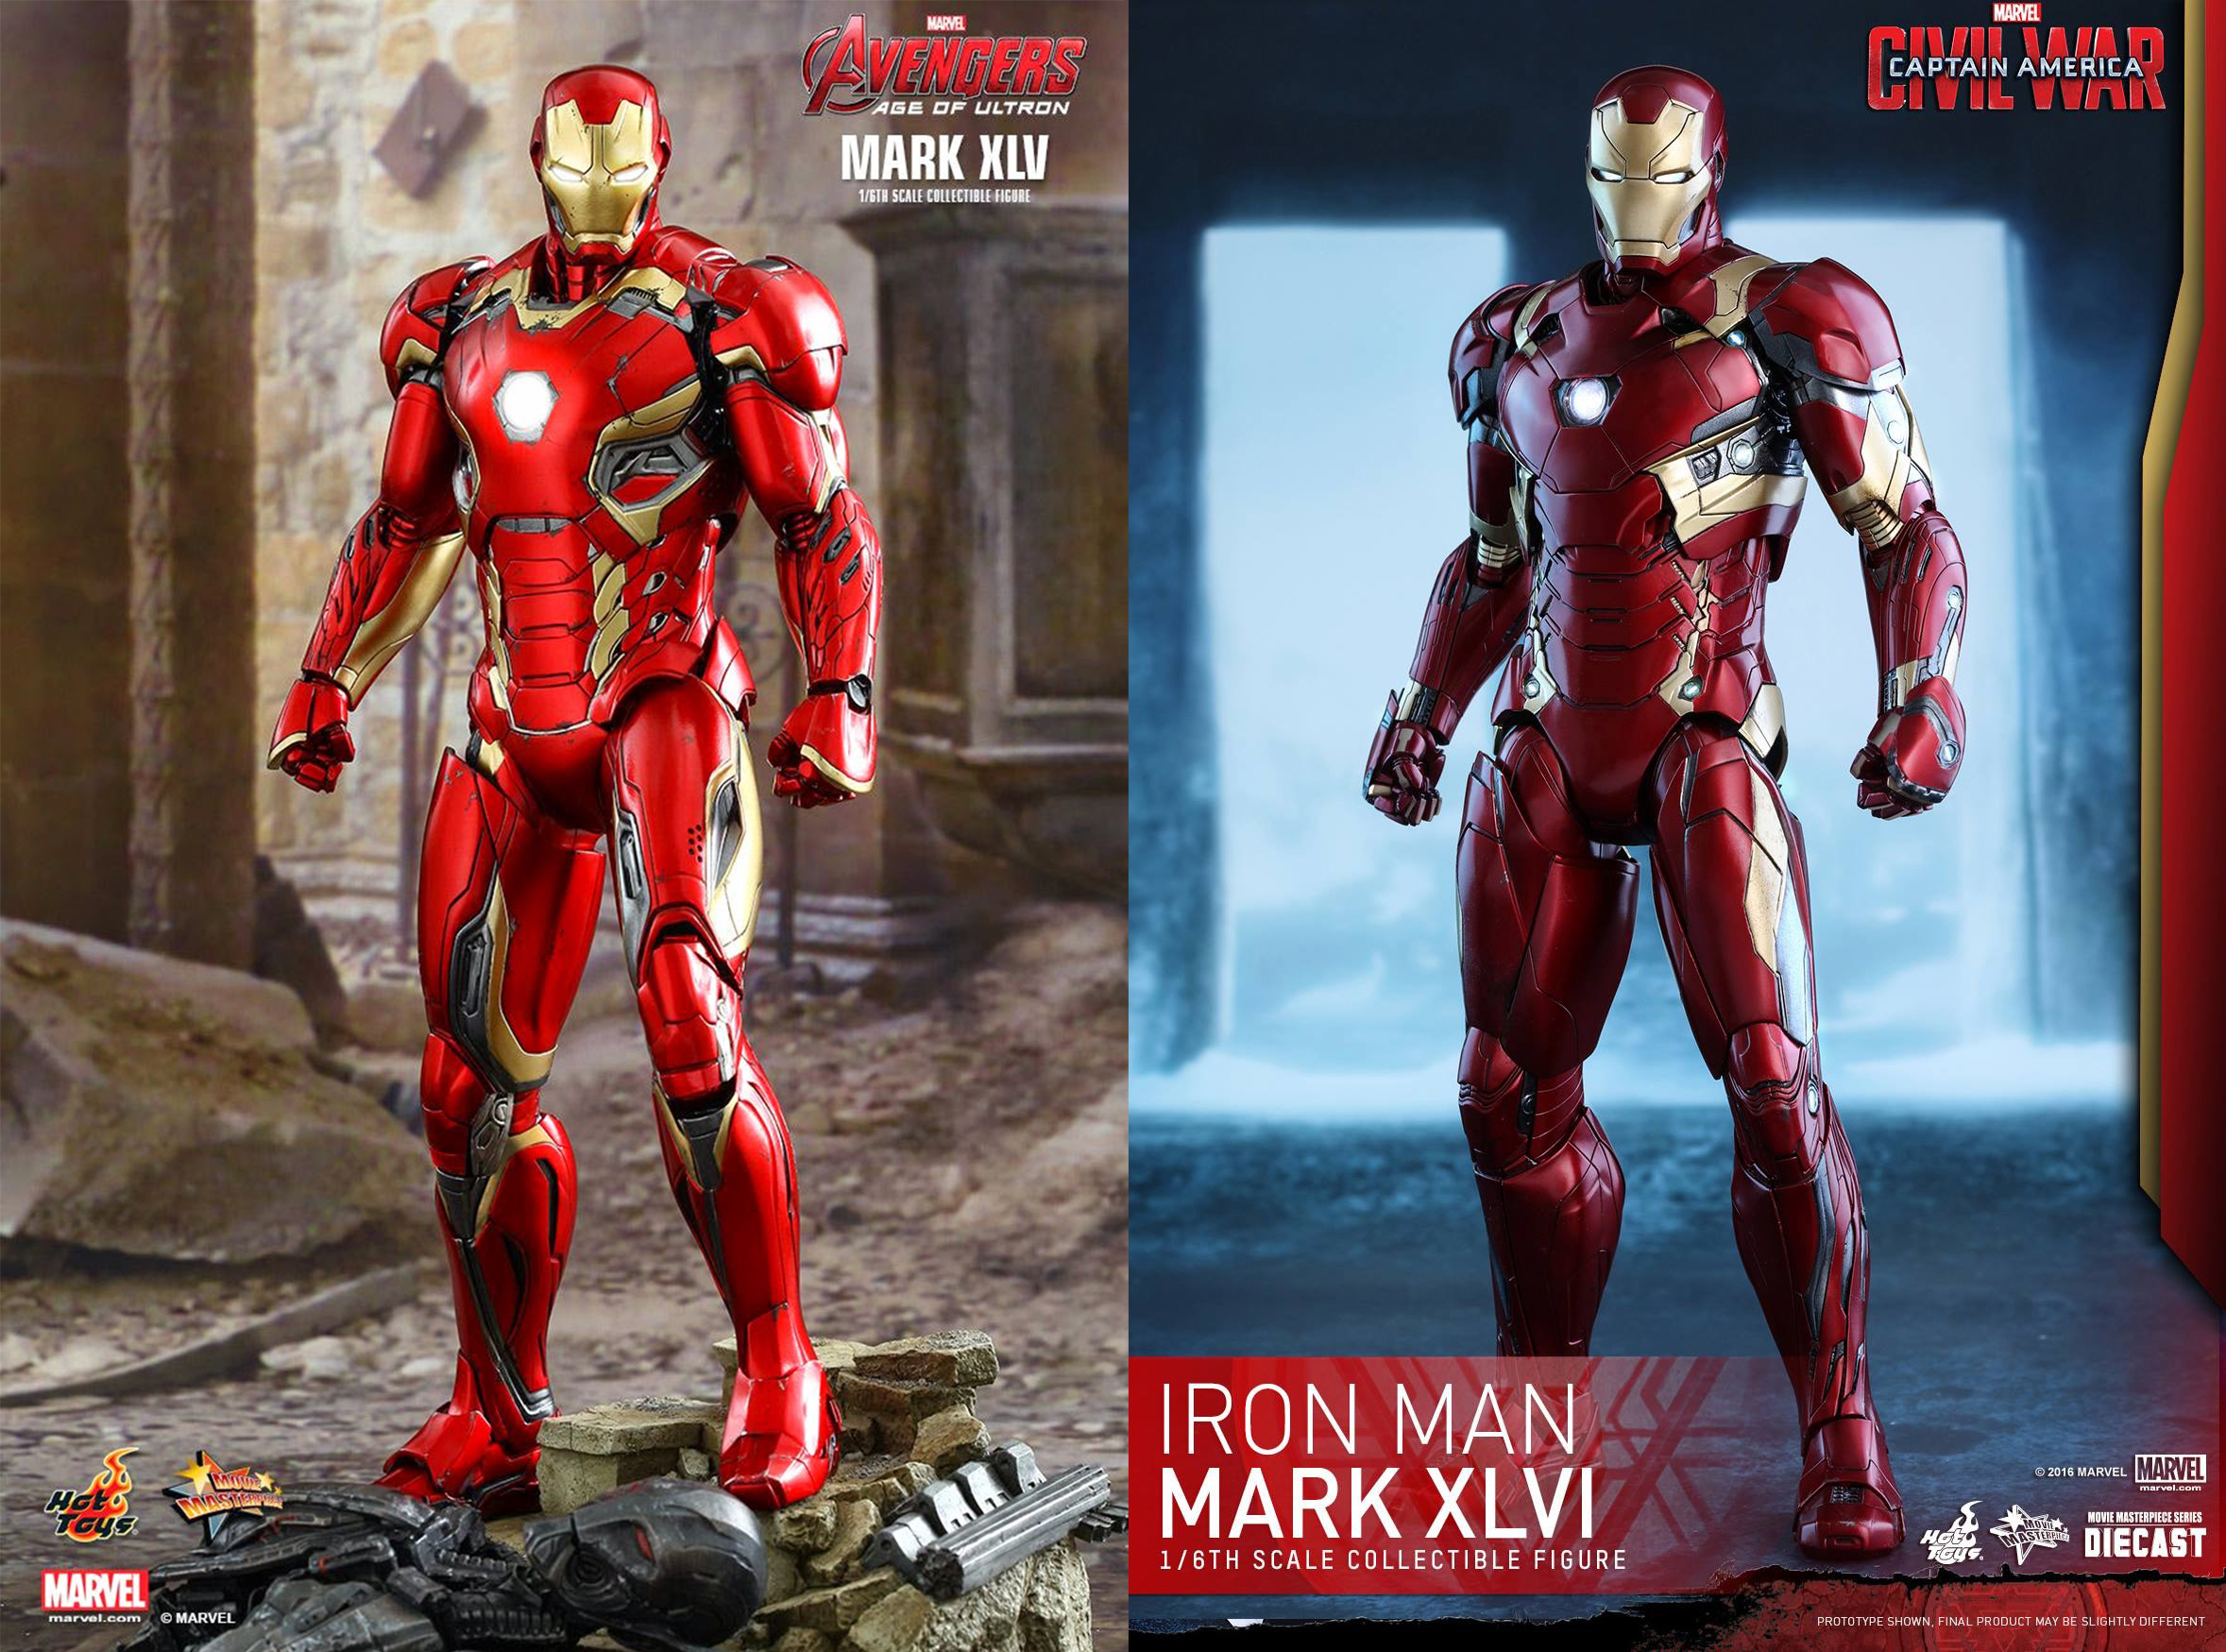 AVENGERS 2 : AGE OF ULTRON - IRON MAN MARK XLV (MMS300DC11) - Page 3 160419031702825991